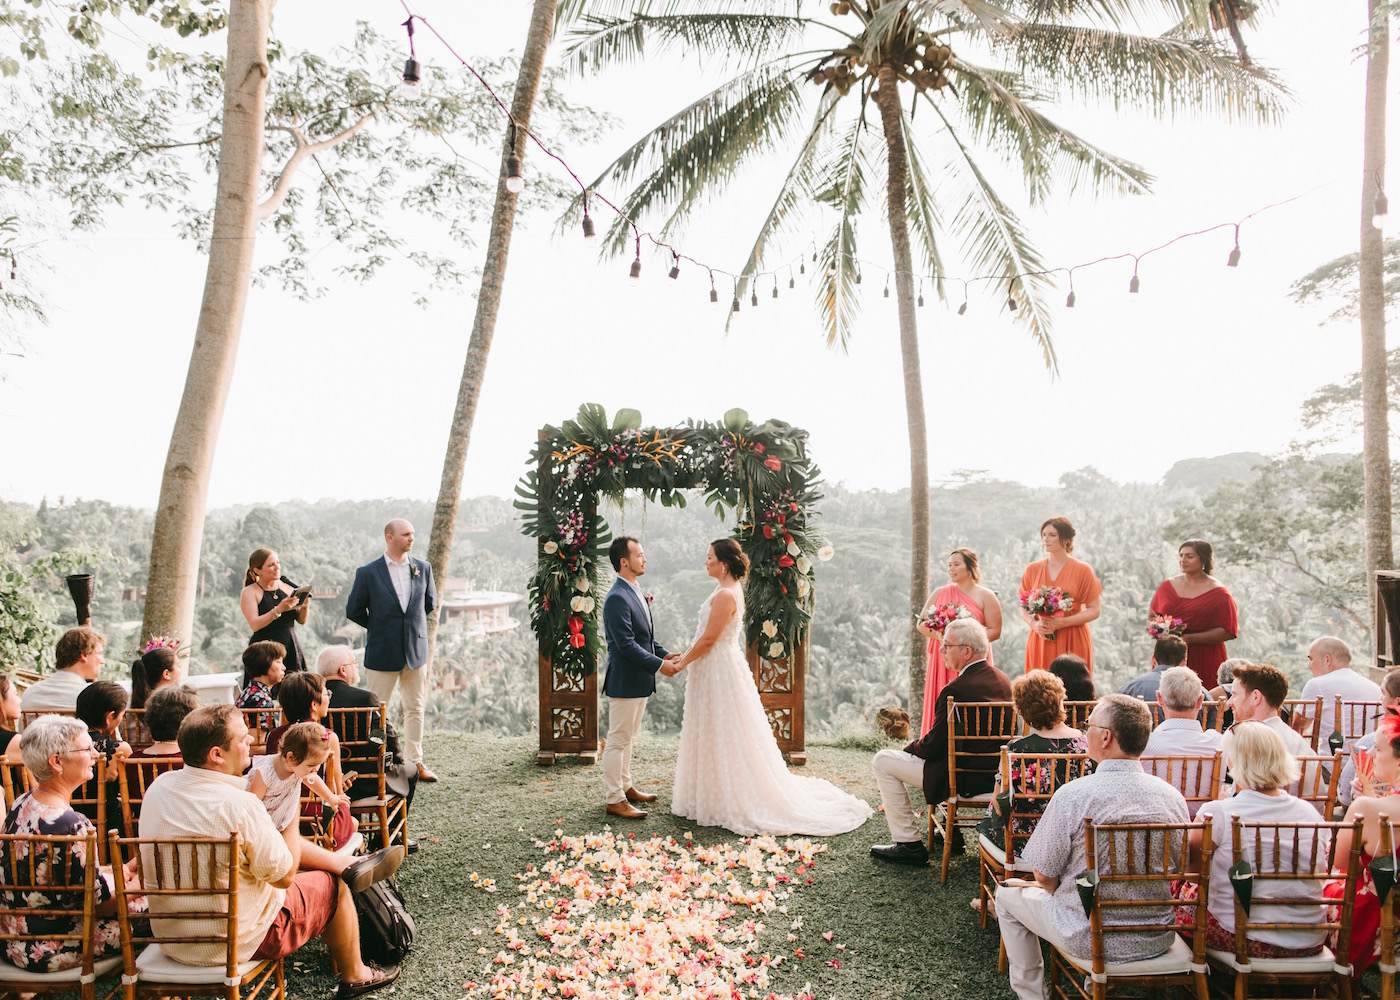 Top 15 Wedding Planners in Bali - the trusted experts | Honeycombers